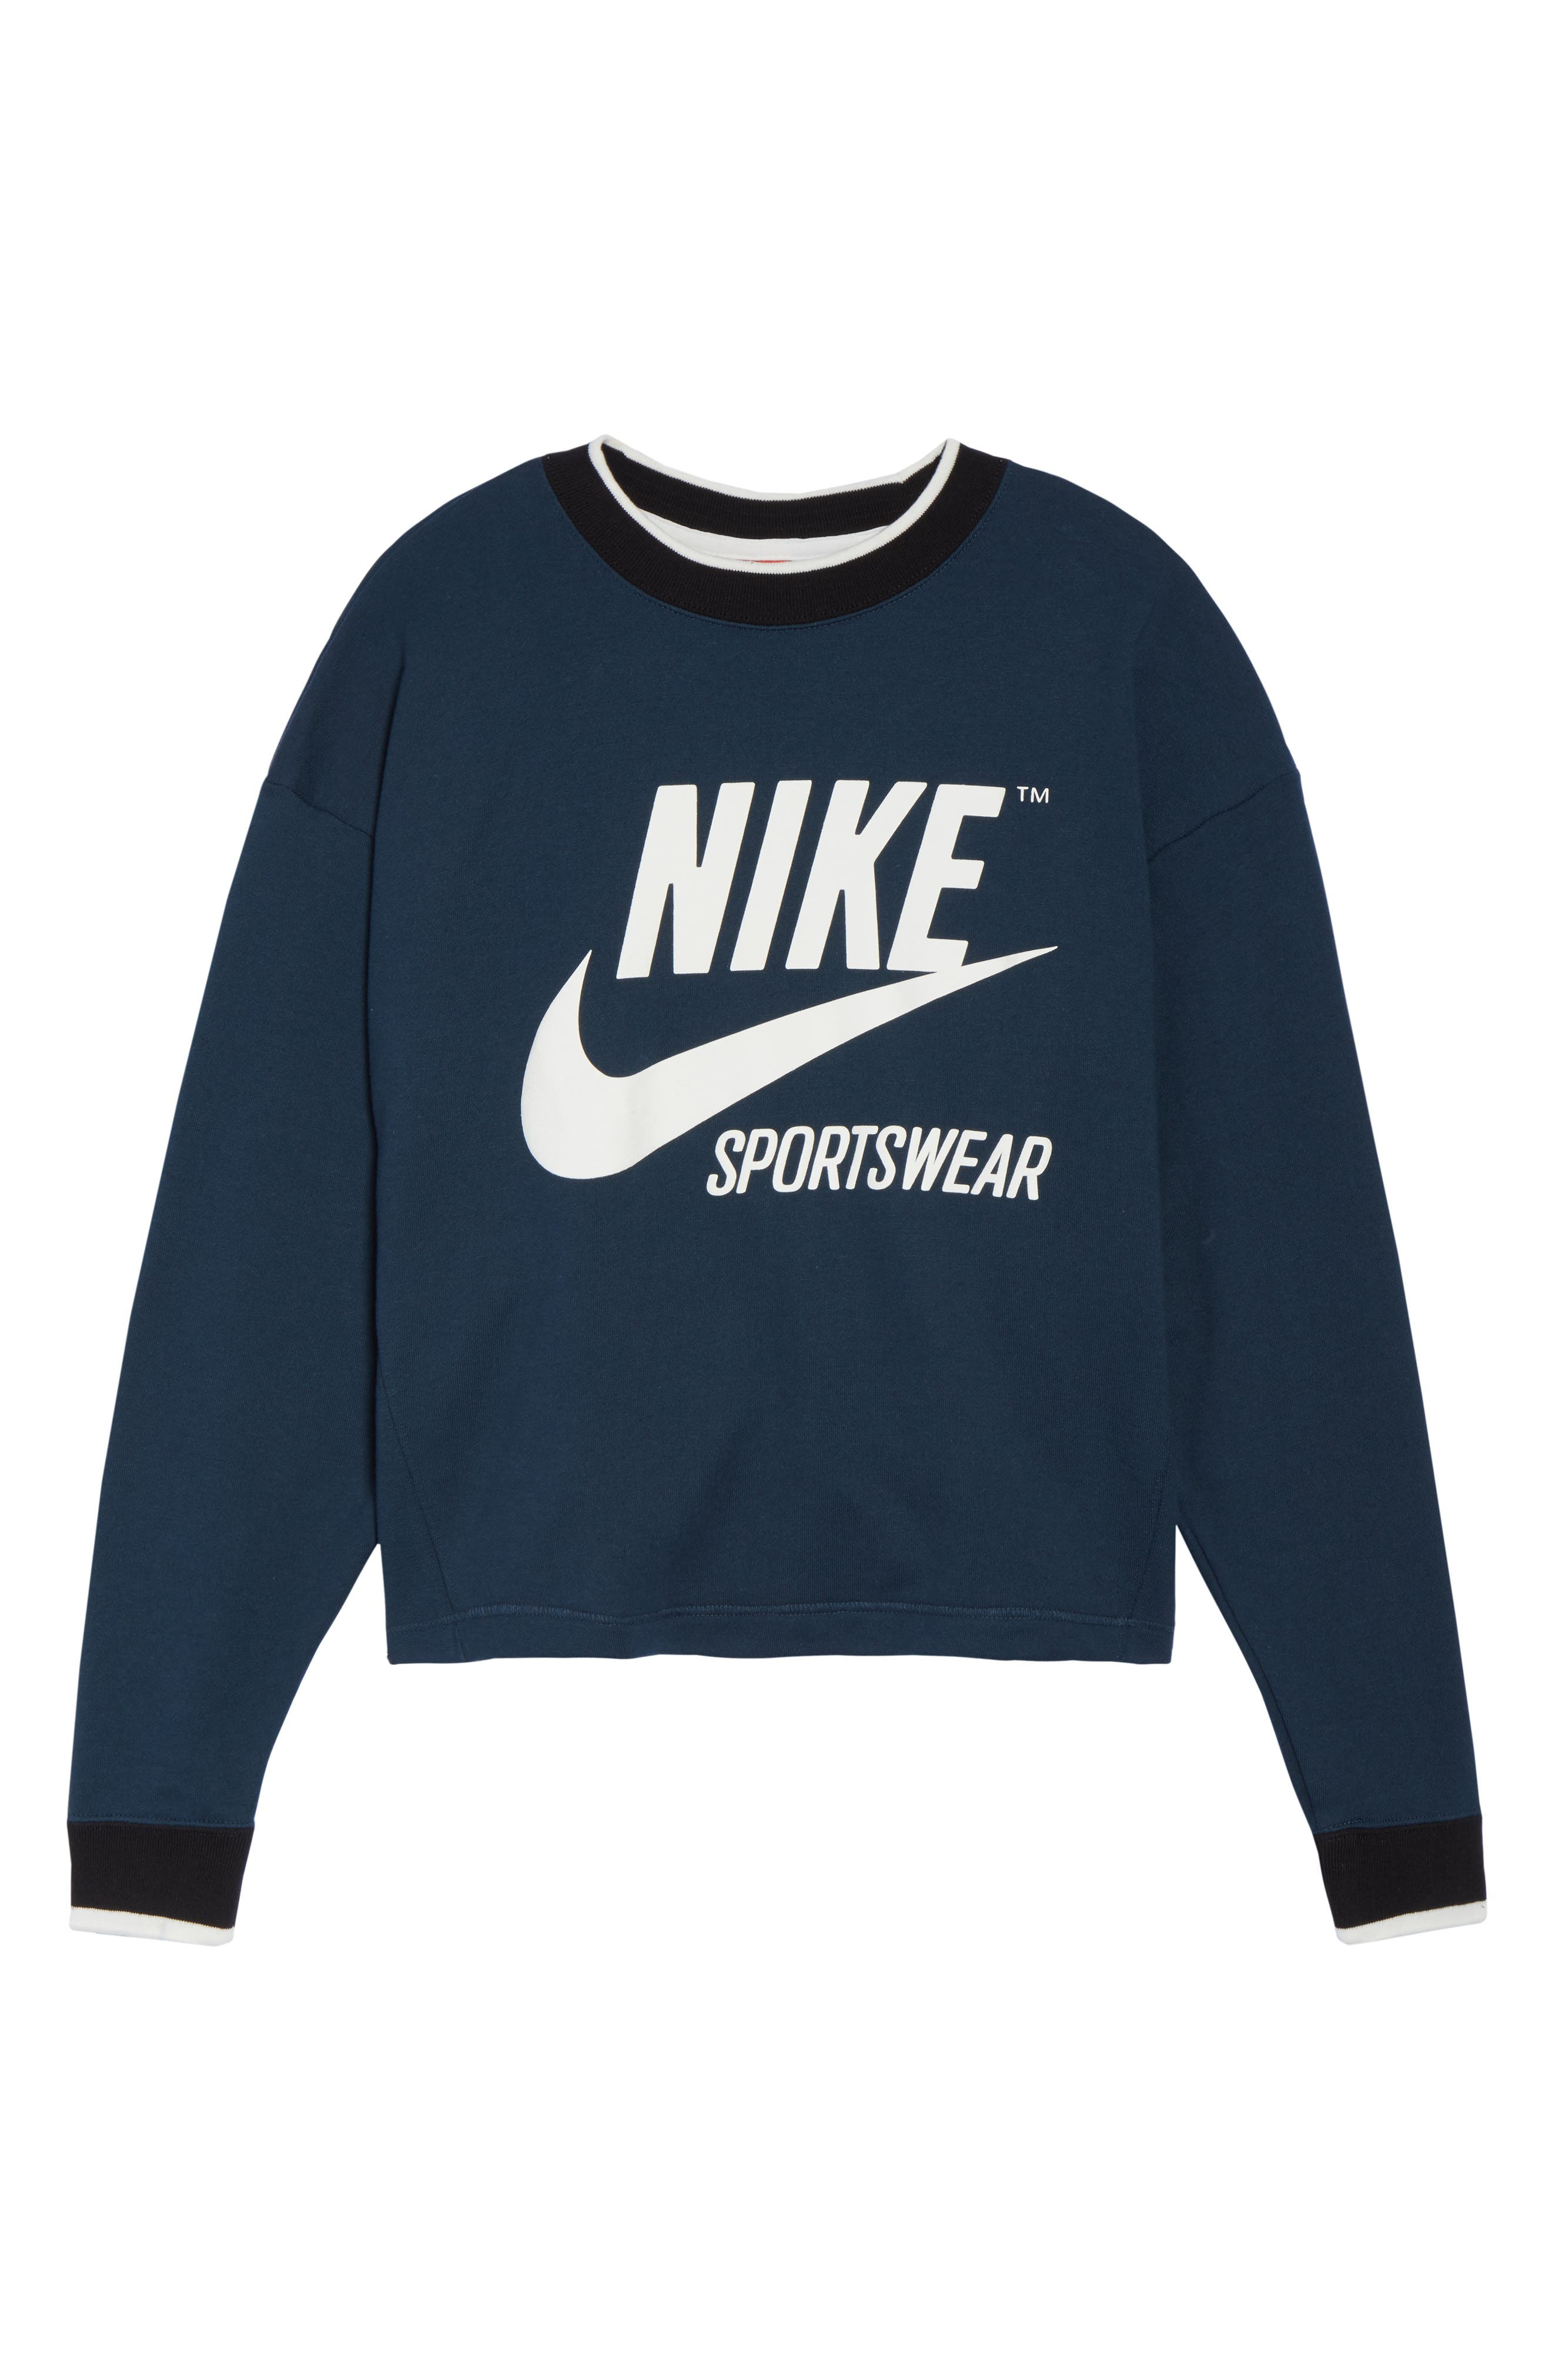 Sportswear Archive Sweatshirt,                             Alternate thumbnail 7, color,                             454